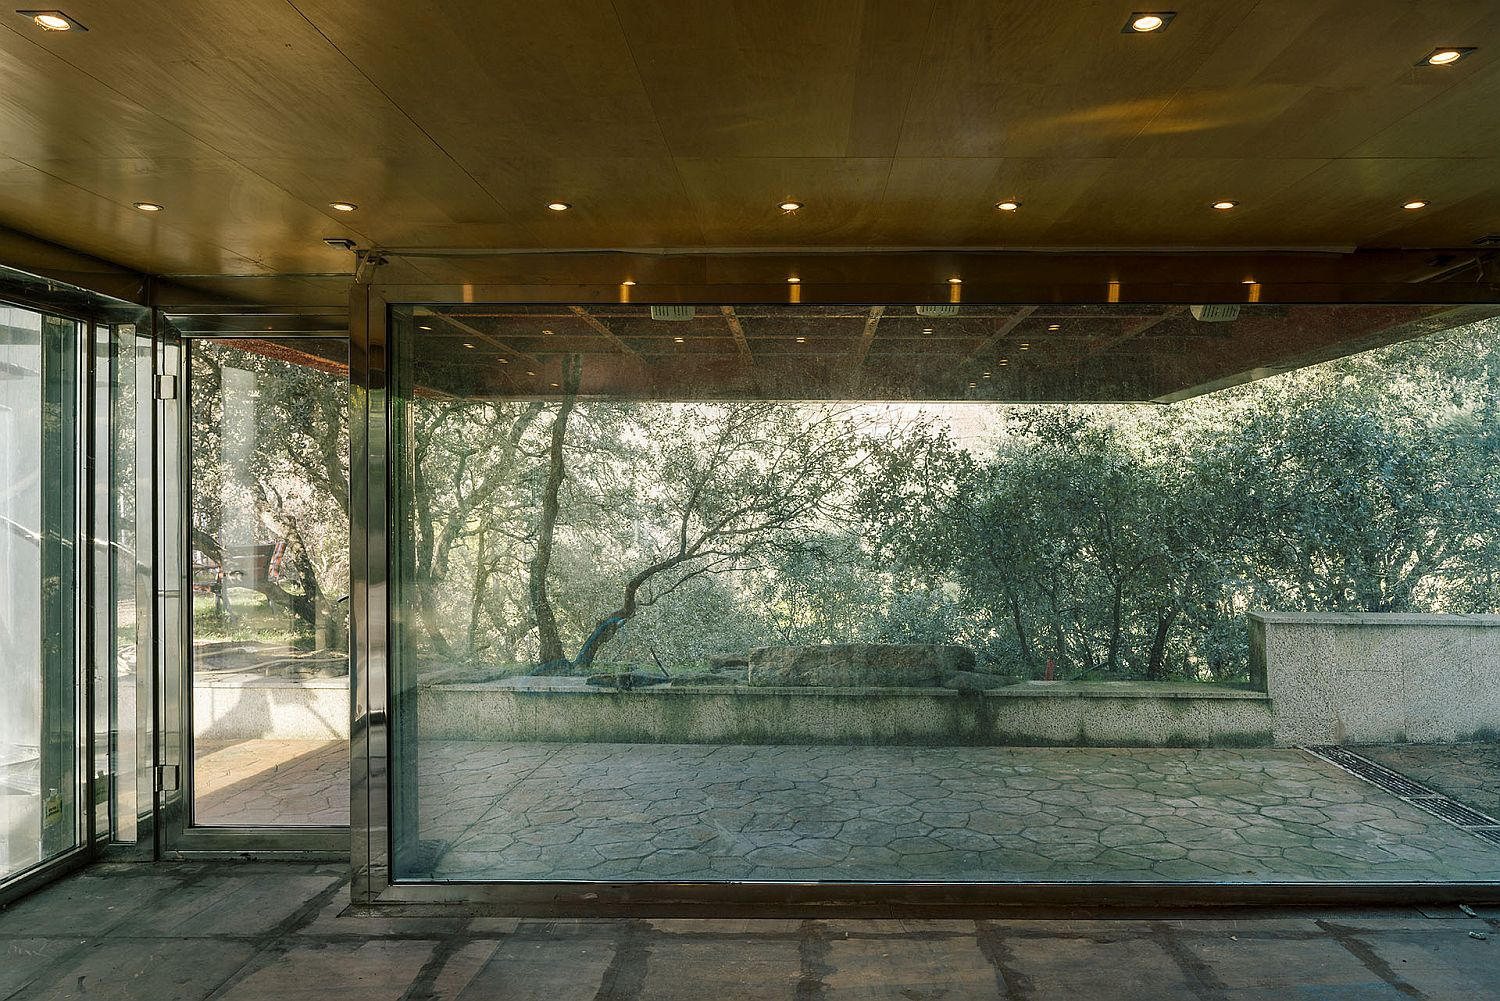 Large-glass-windows-and-walls-bring-the-outdoors-inside-with-ease